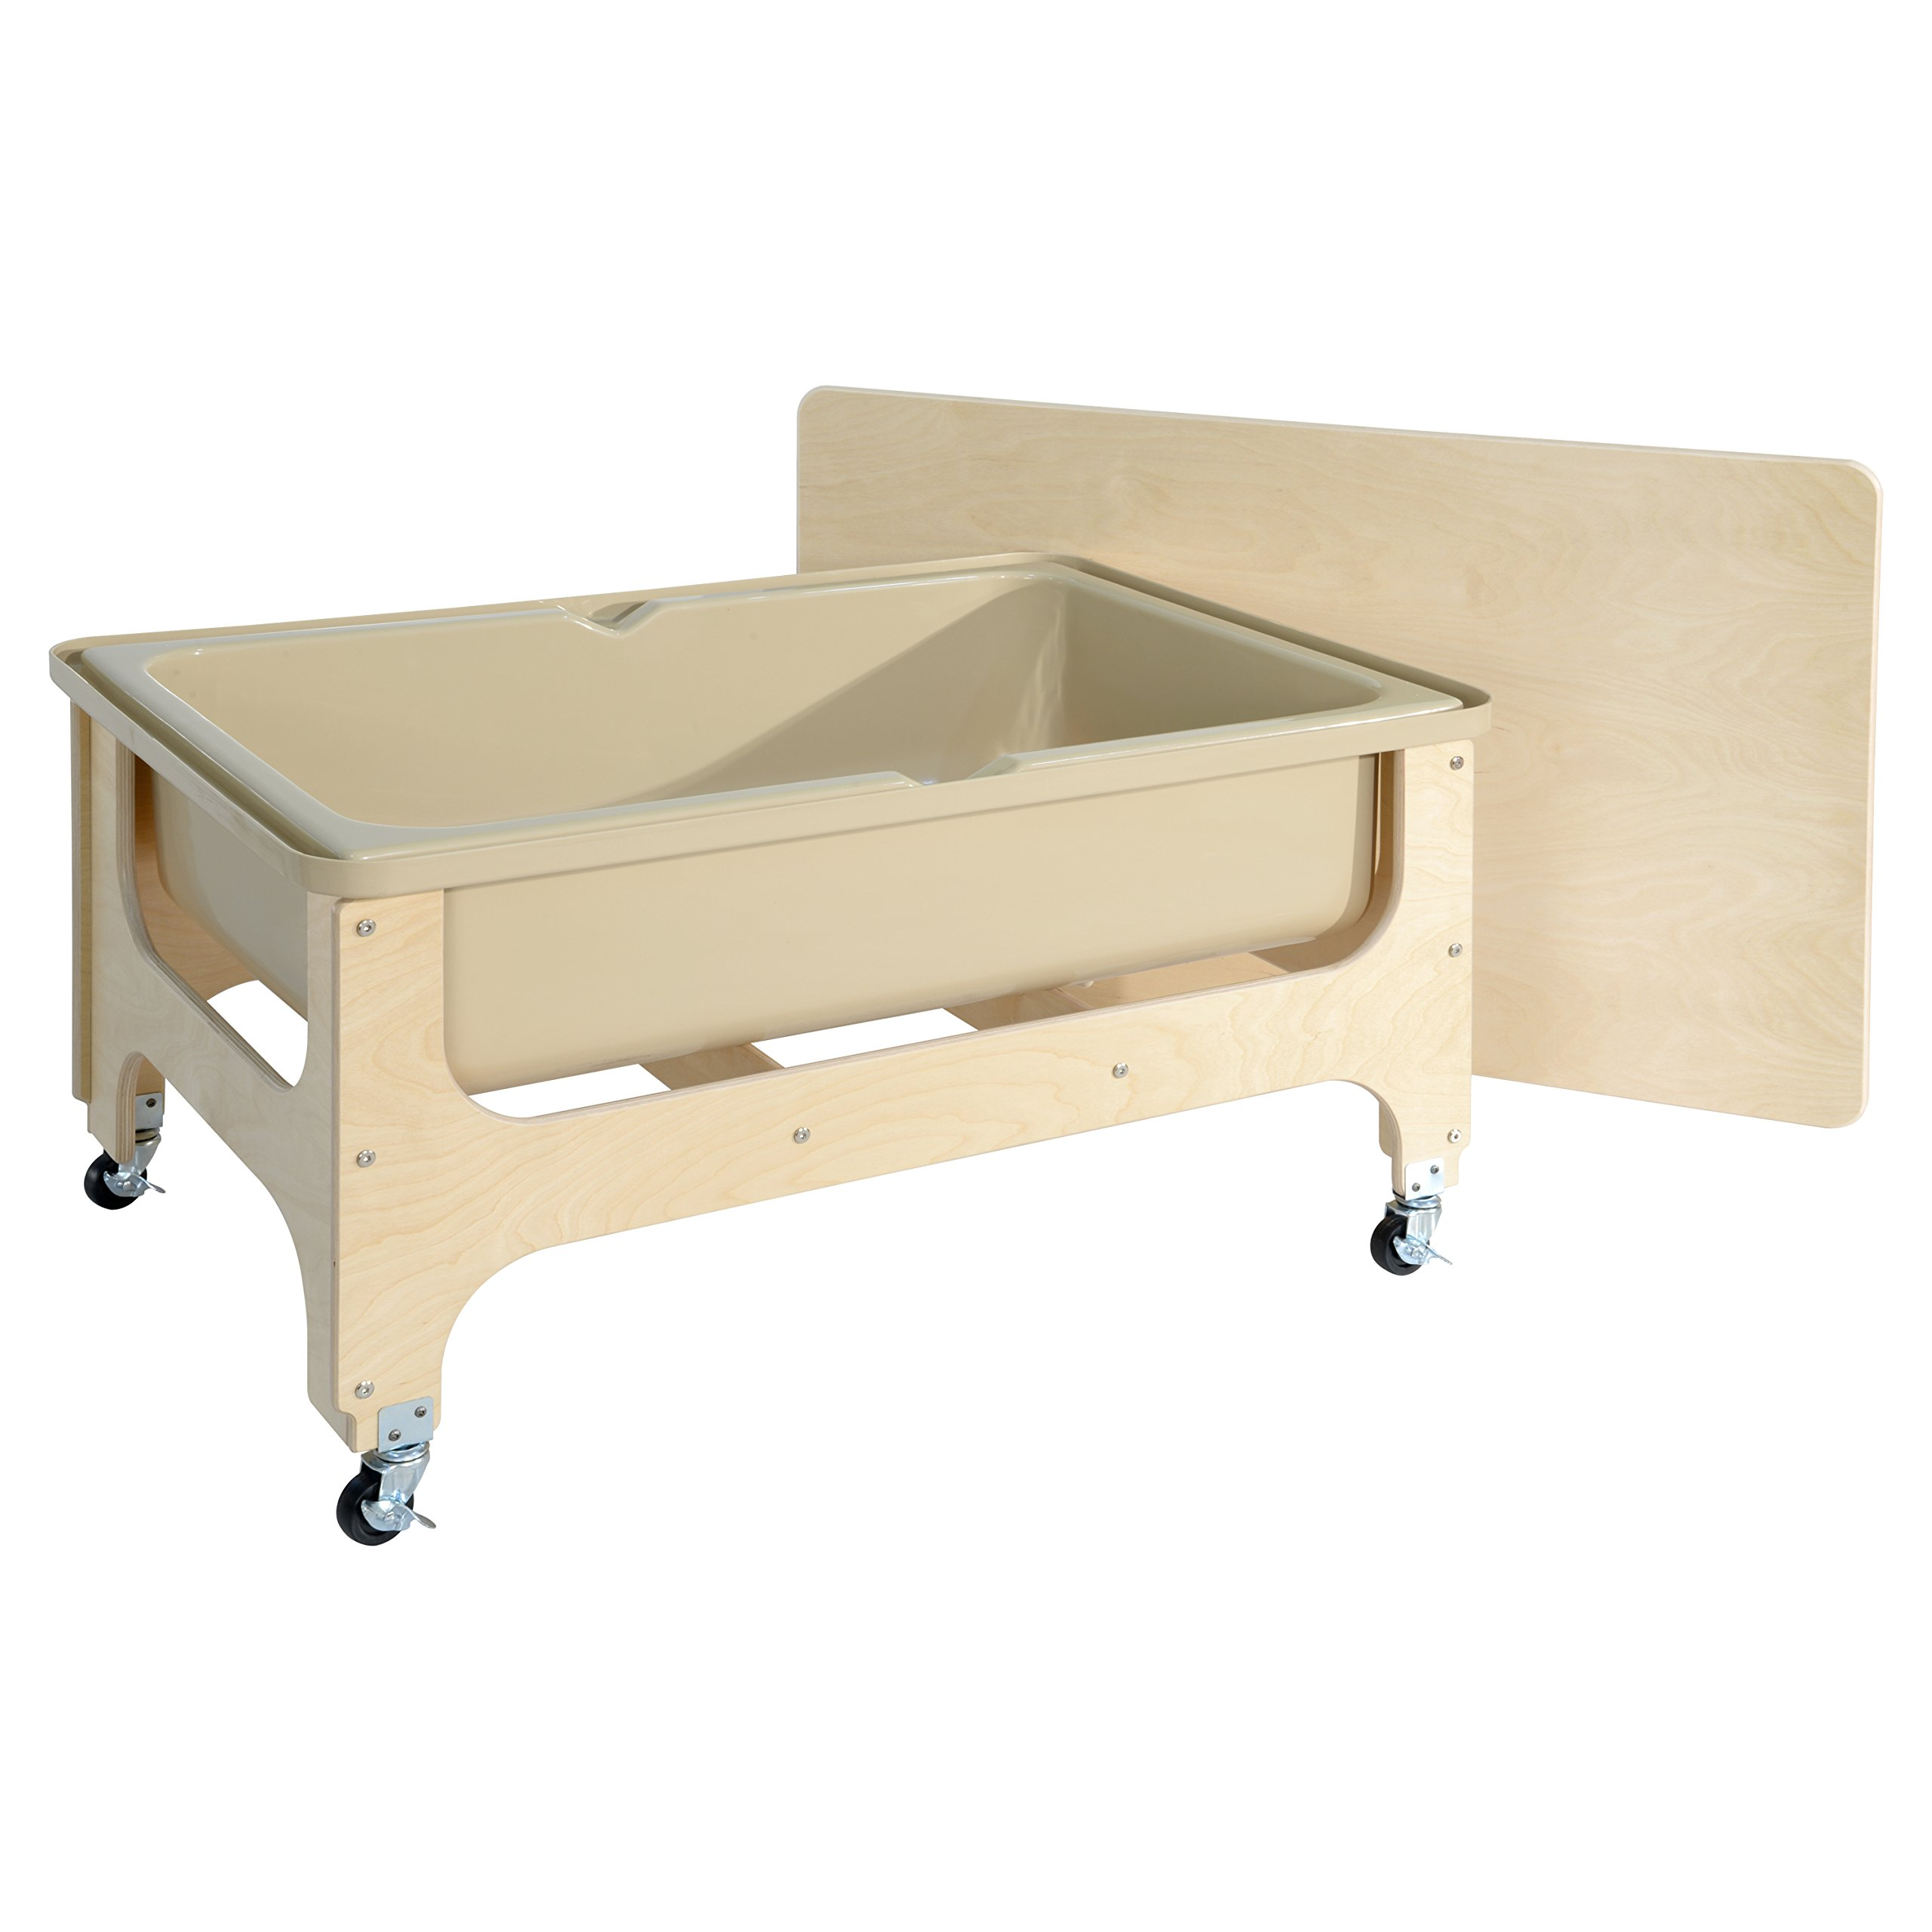 Wood Designs WD11875 - Tot Size Sand & Water Table with Lid